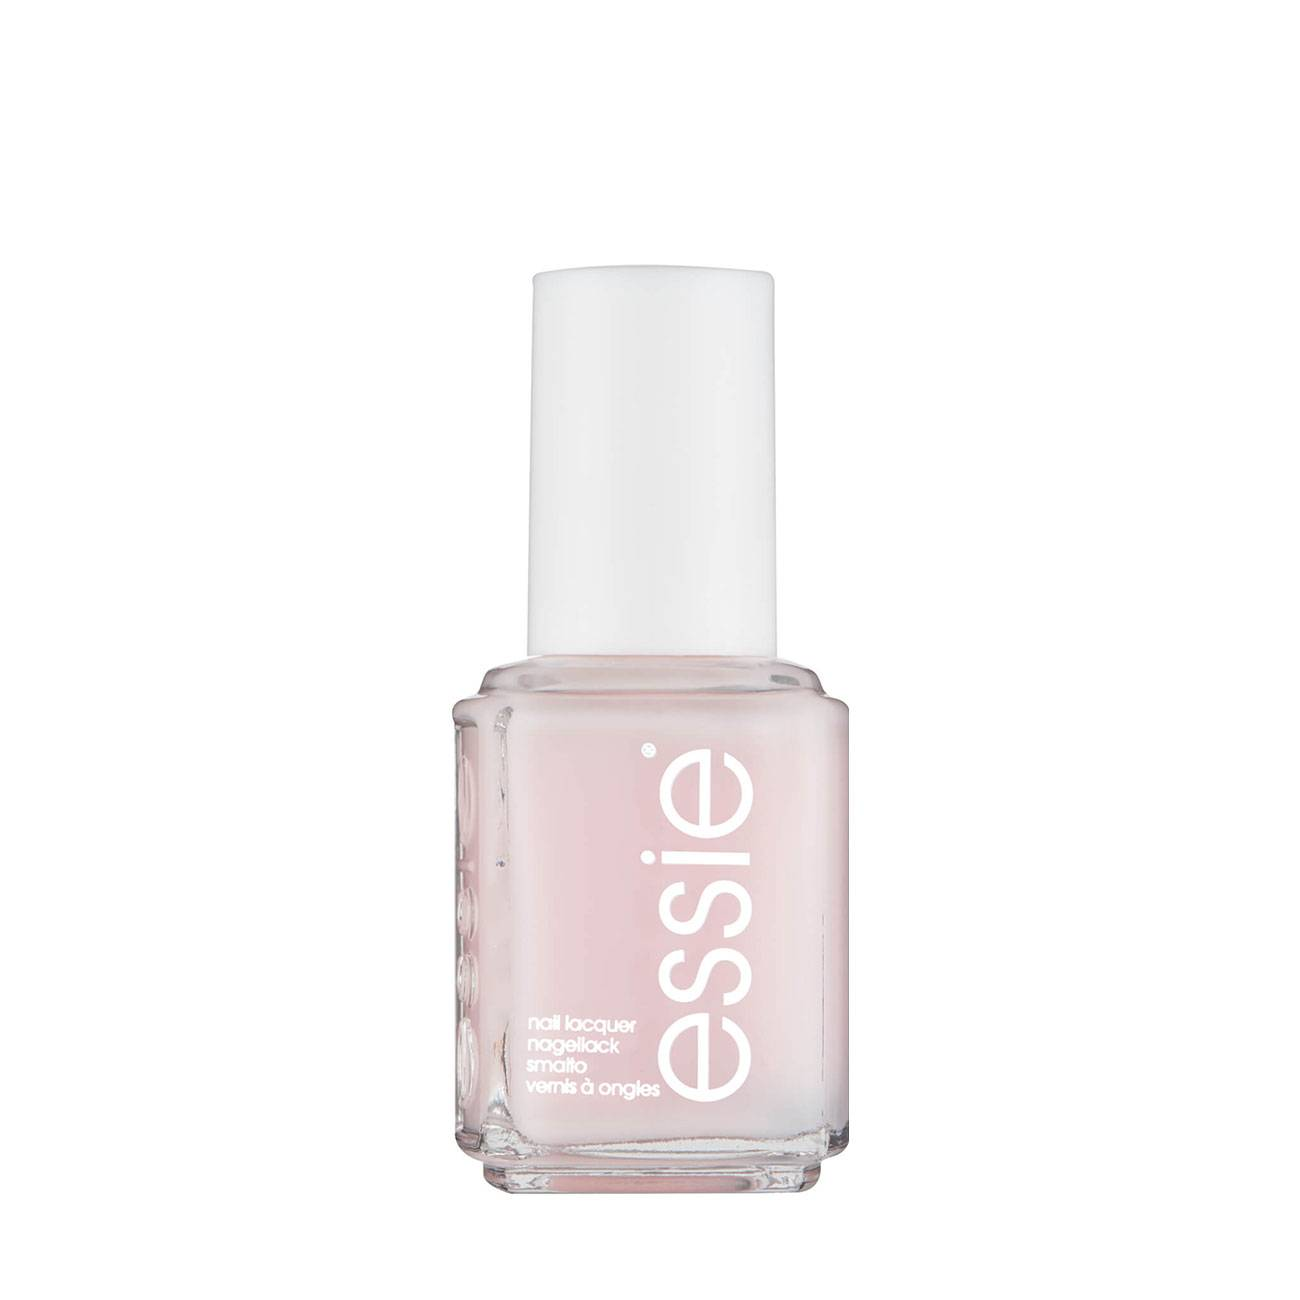 Nail Polish N°13 13.5gr Essie imagine 2021 bestvalue.eu